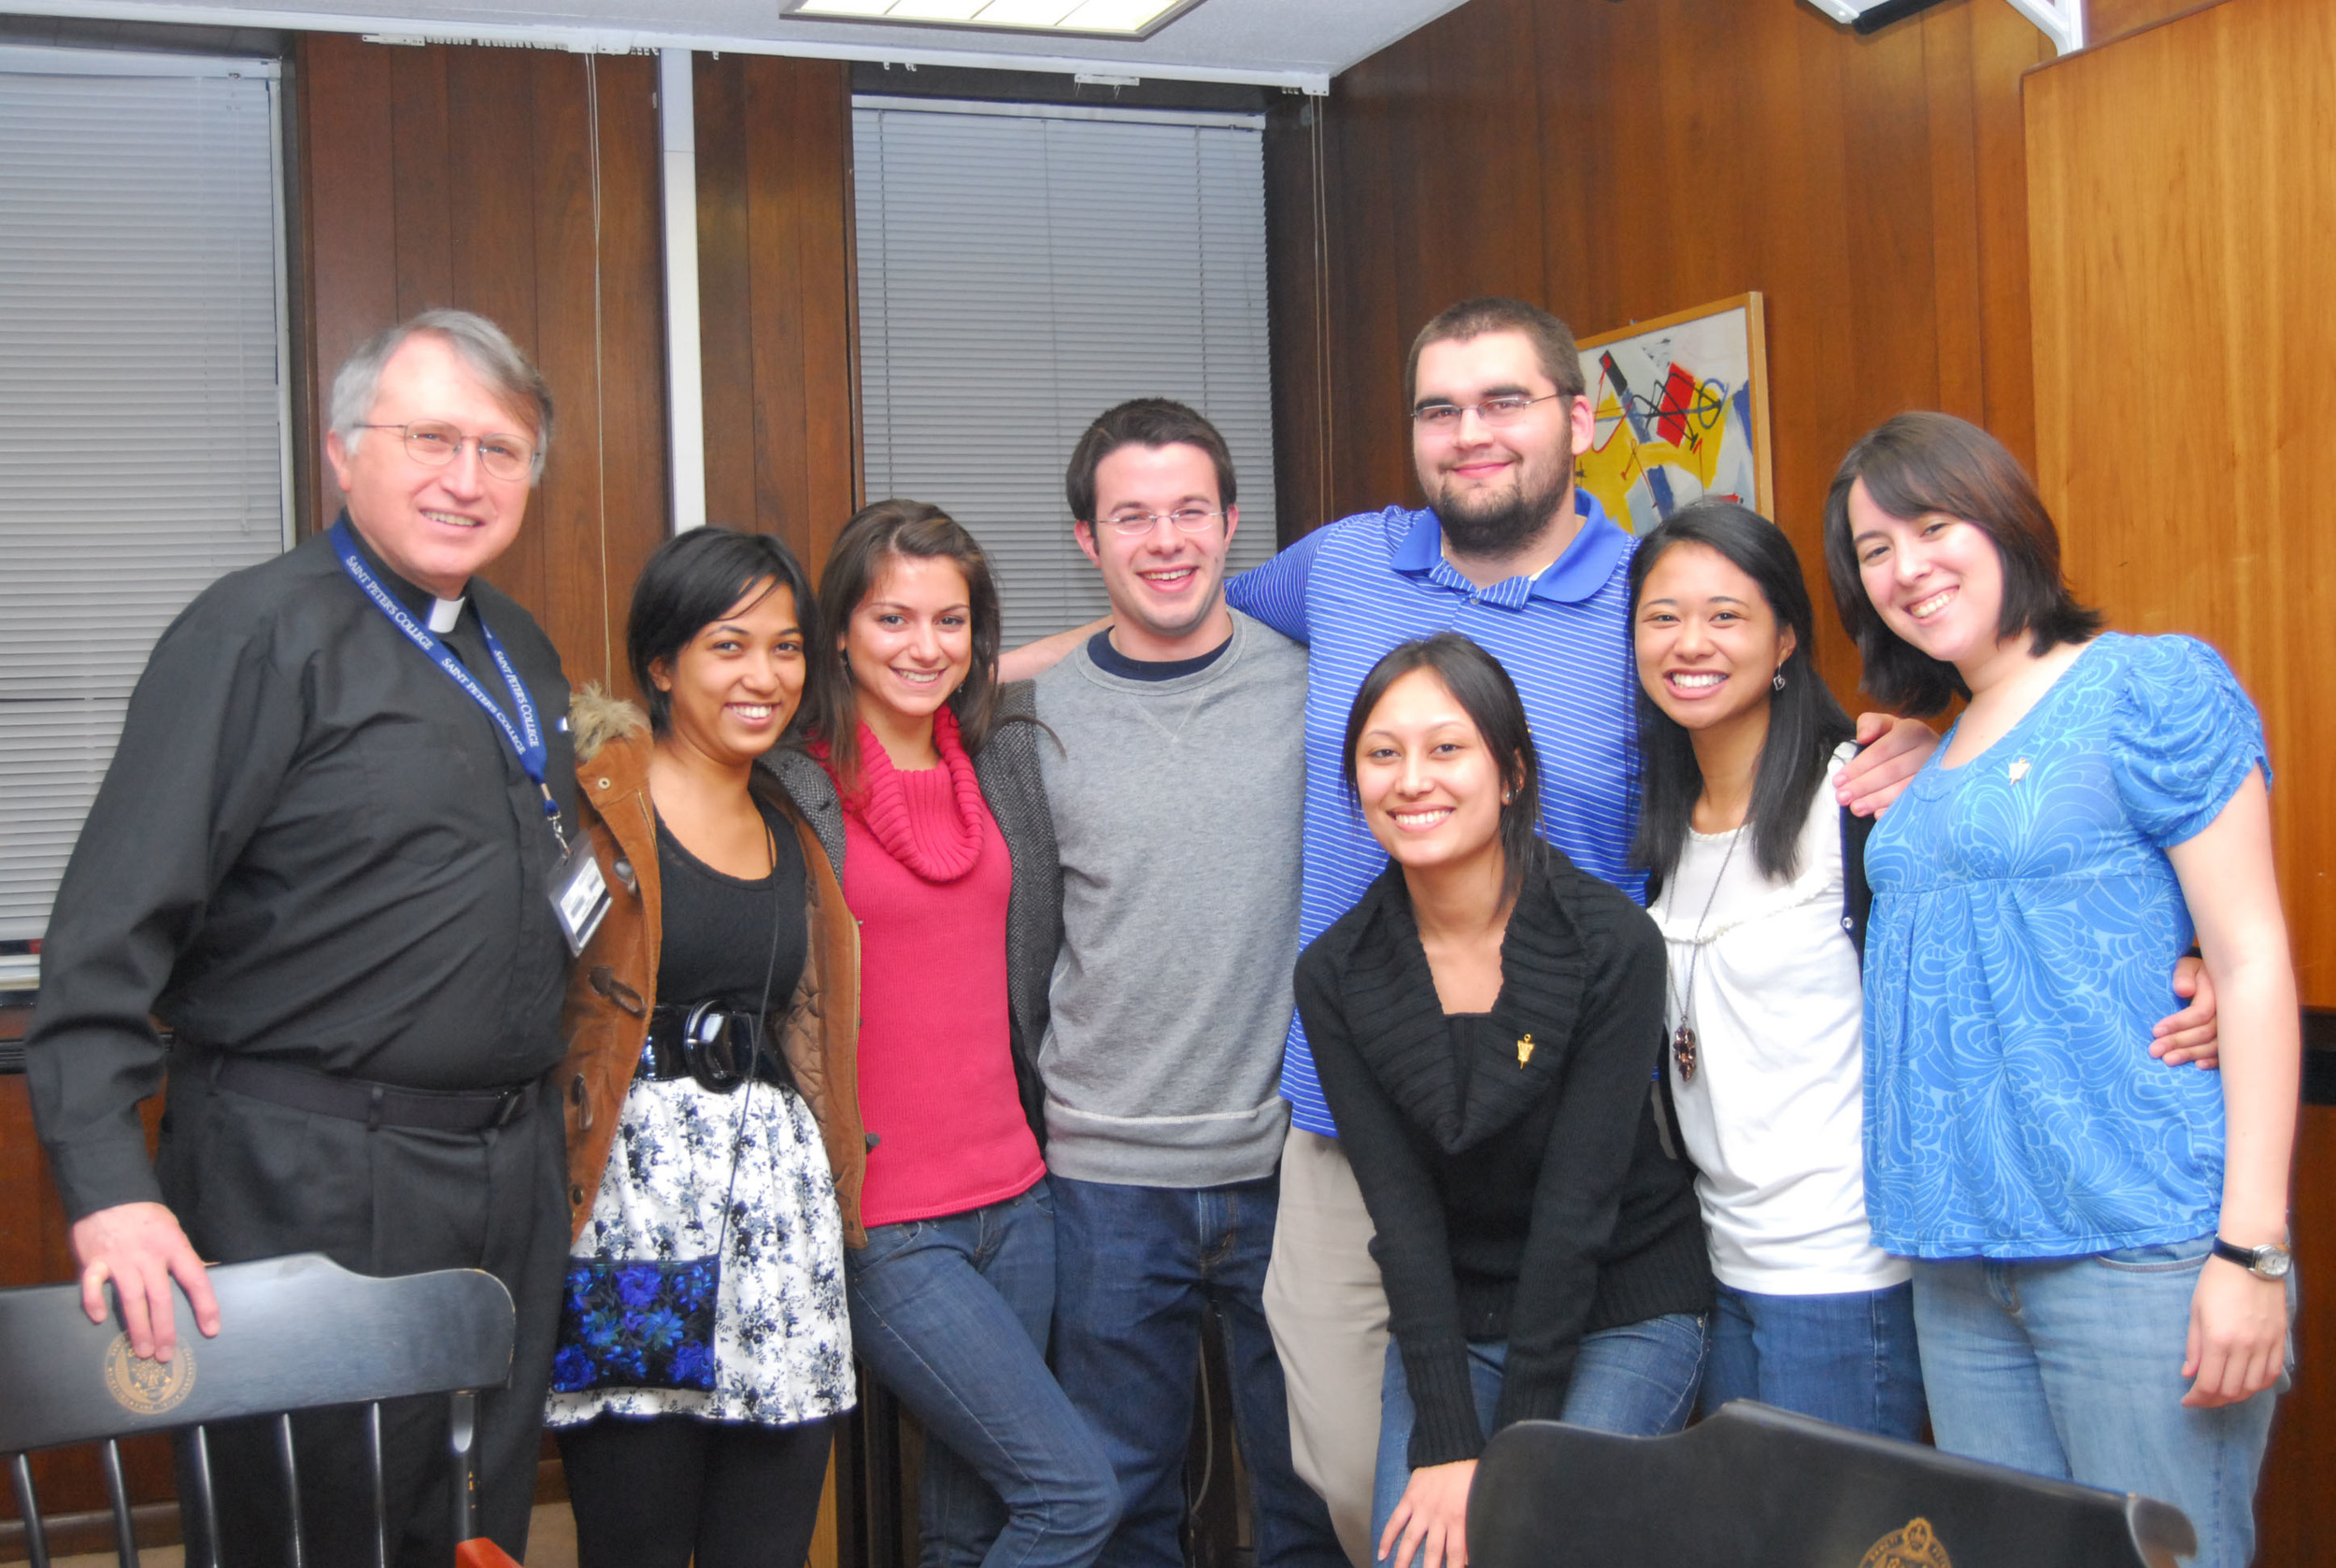 The Alpha Sigma Nu chapter at Saint Peter's in 2010. Pictured from left to right: Rev. Michael Braden, S.J., Alisha Chitrakar '10, Mariya Marinova '10, Gary Young '10, Jacob Hayden '10, Rezma Shrestha '10, Peaches Dela Paz '10 and Veronica Graveline '10. (Photo courtesy of Saint Peter's)